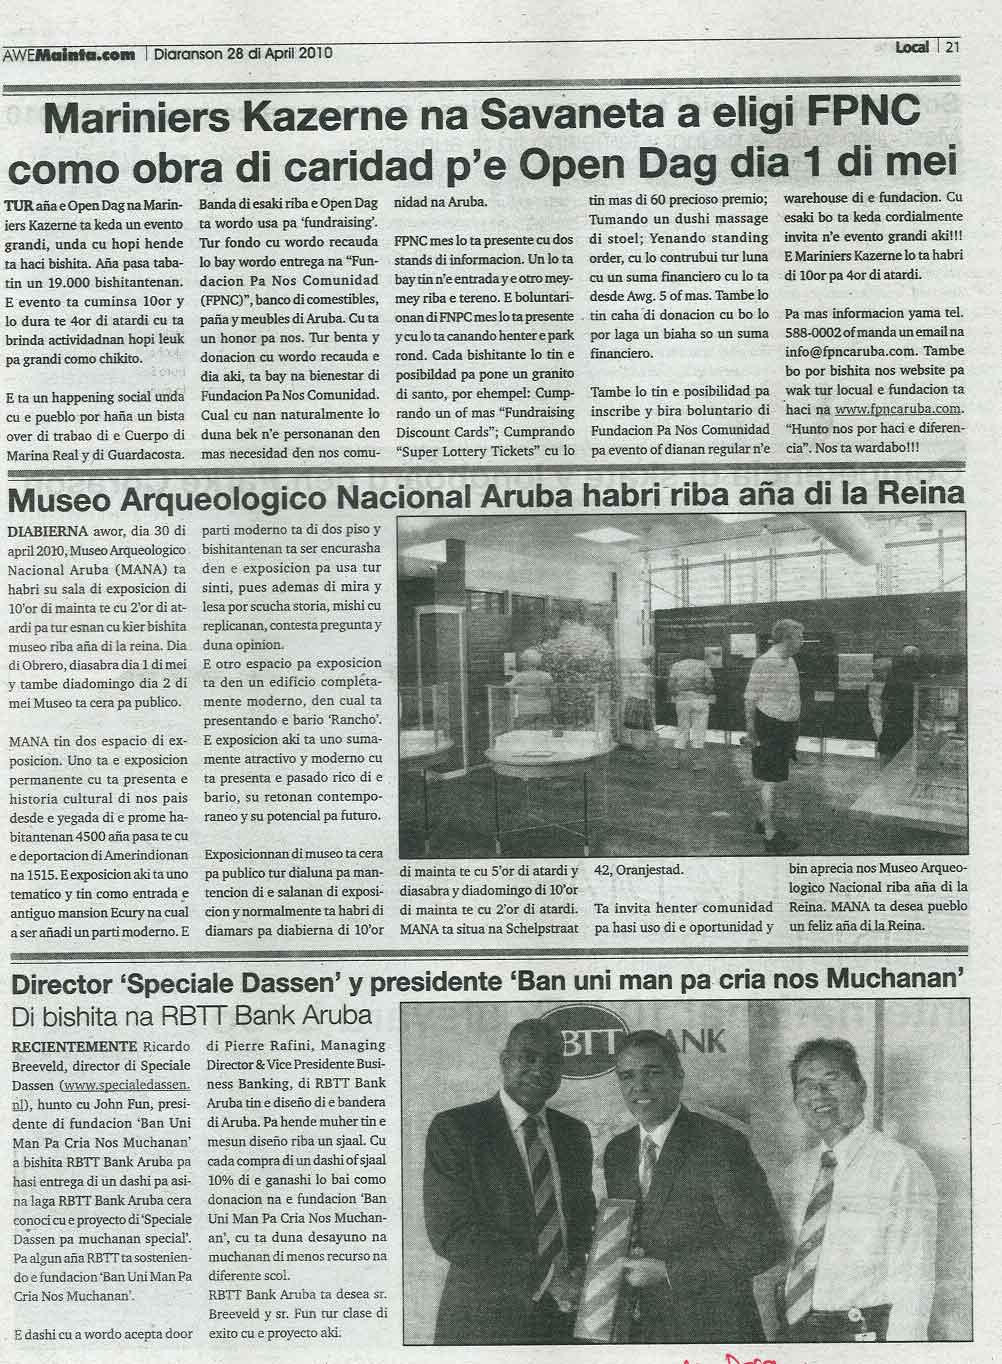 Aruba Media: Awemainta